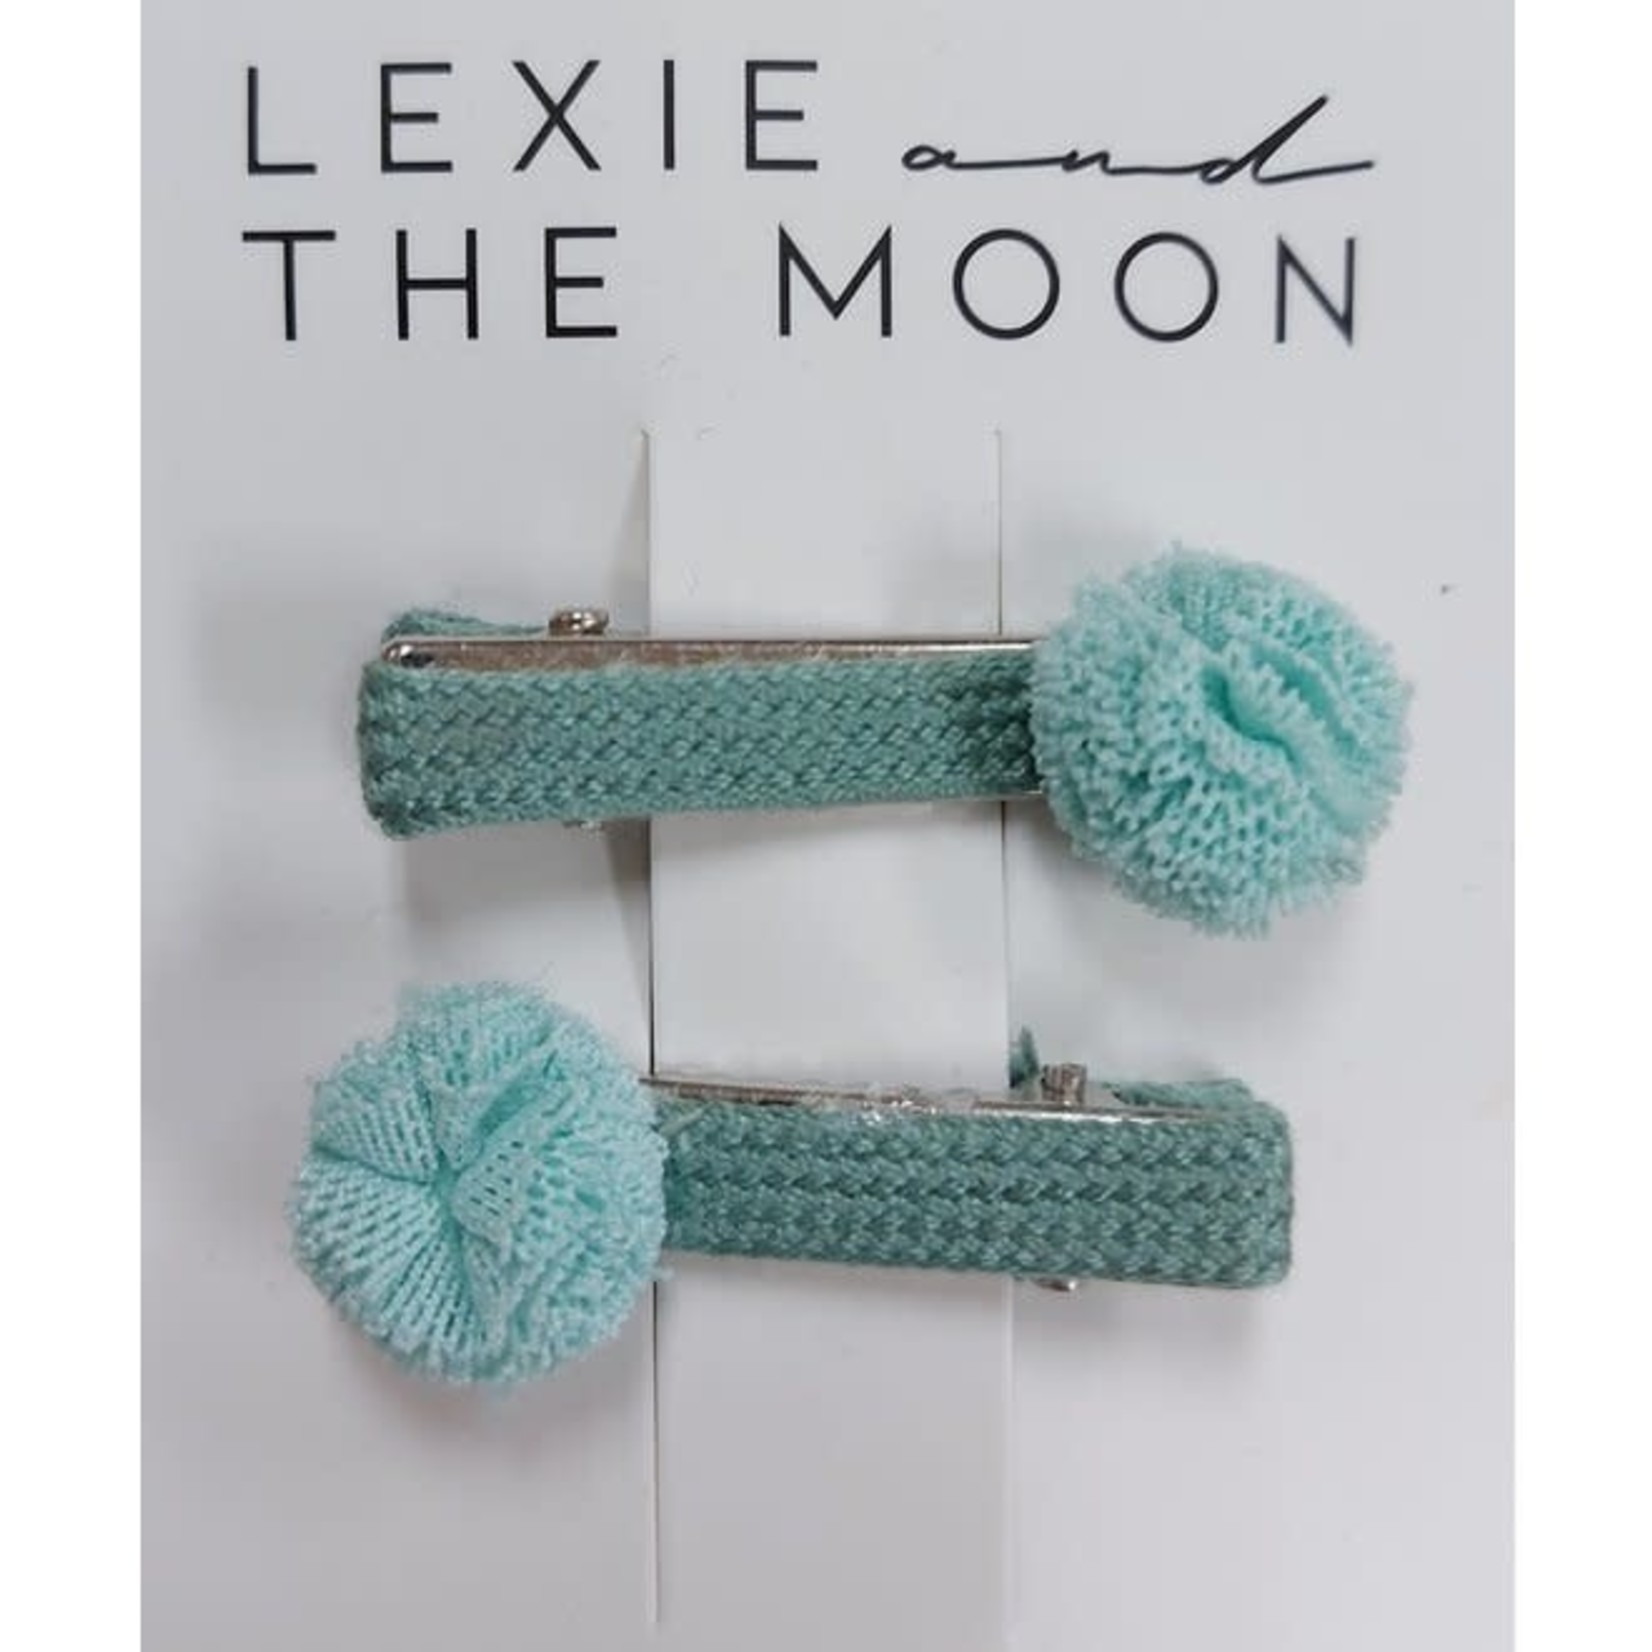 LEXIE AND THE MOON LEXIE AND THE MOON haarclips  mini pompon